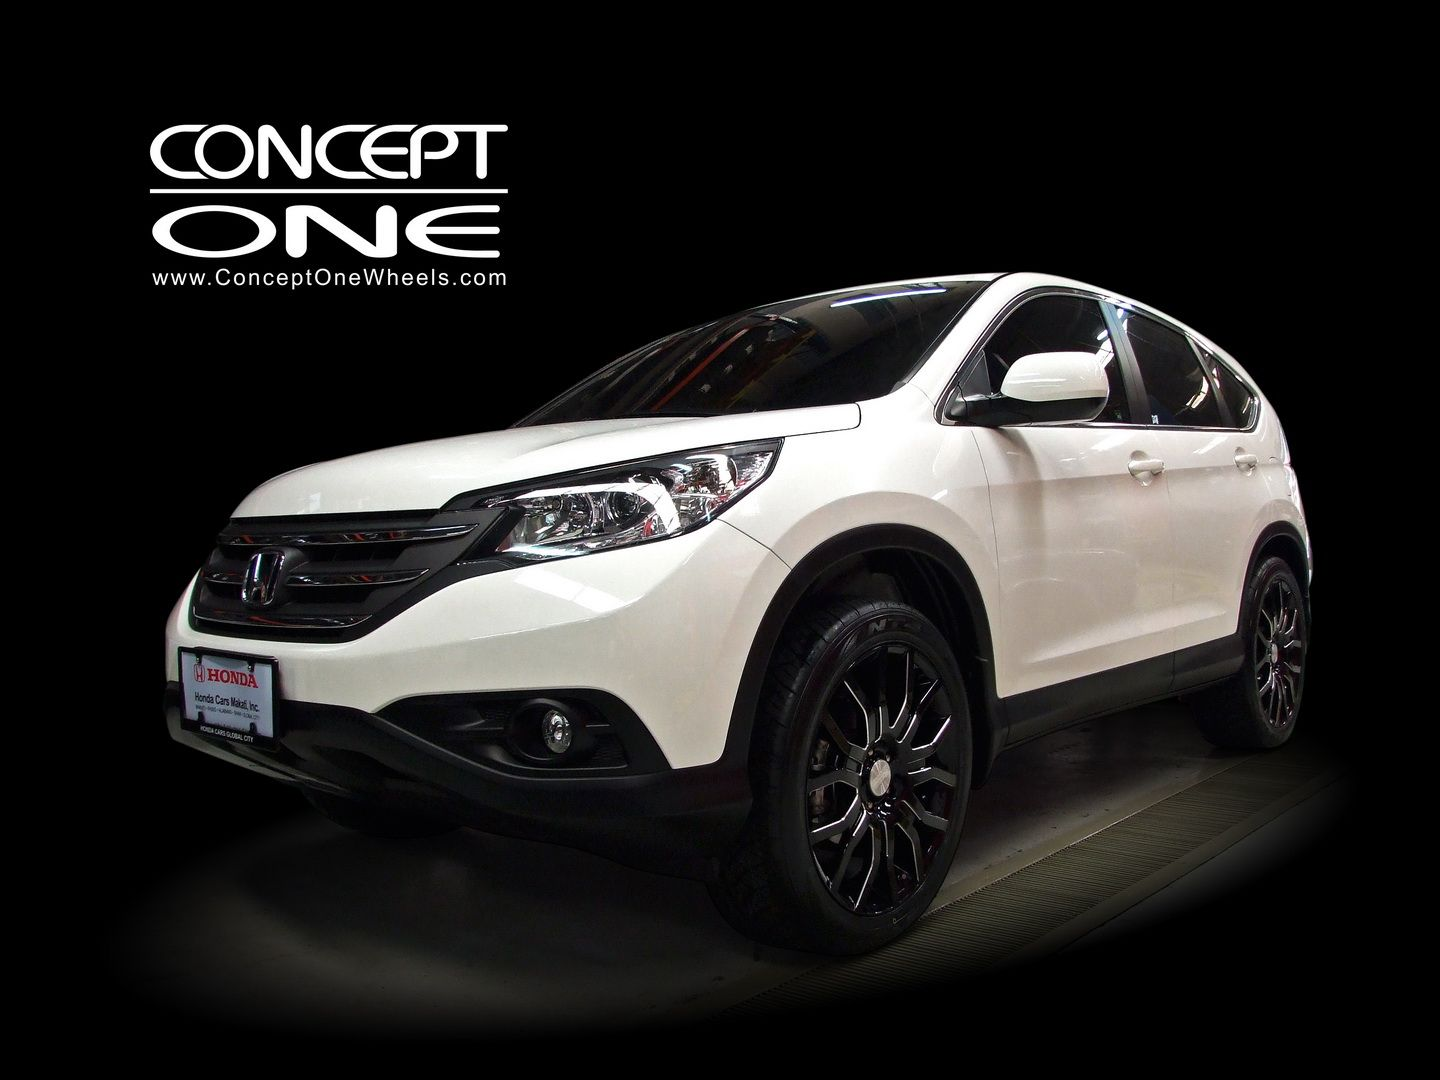 2017 honda crv front view white color pictures automotive latest car review car concept. Black Bedroom Furniture Sets. Home Design Ideas